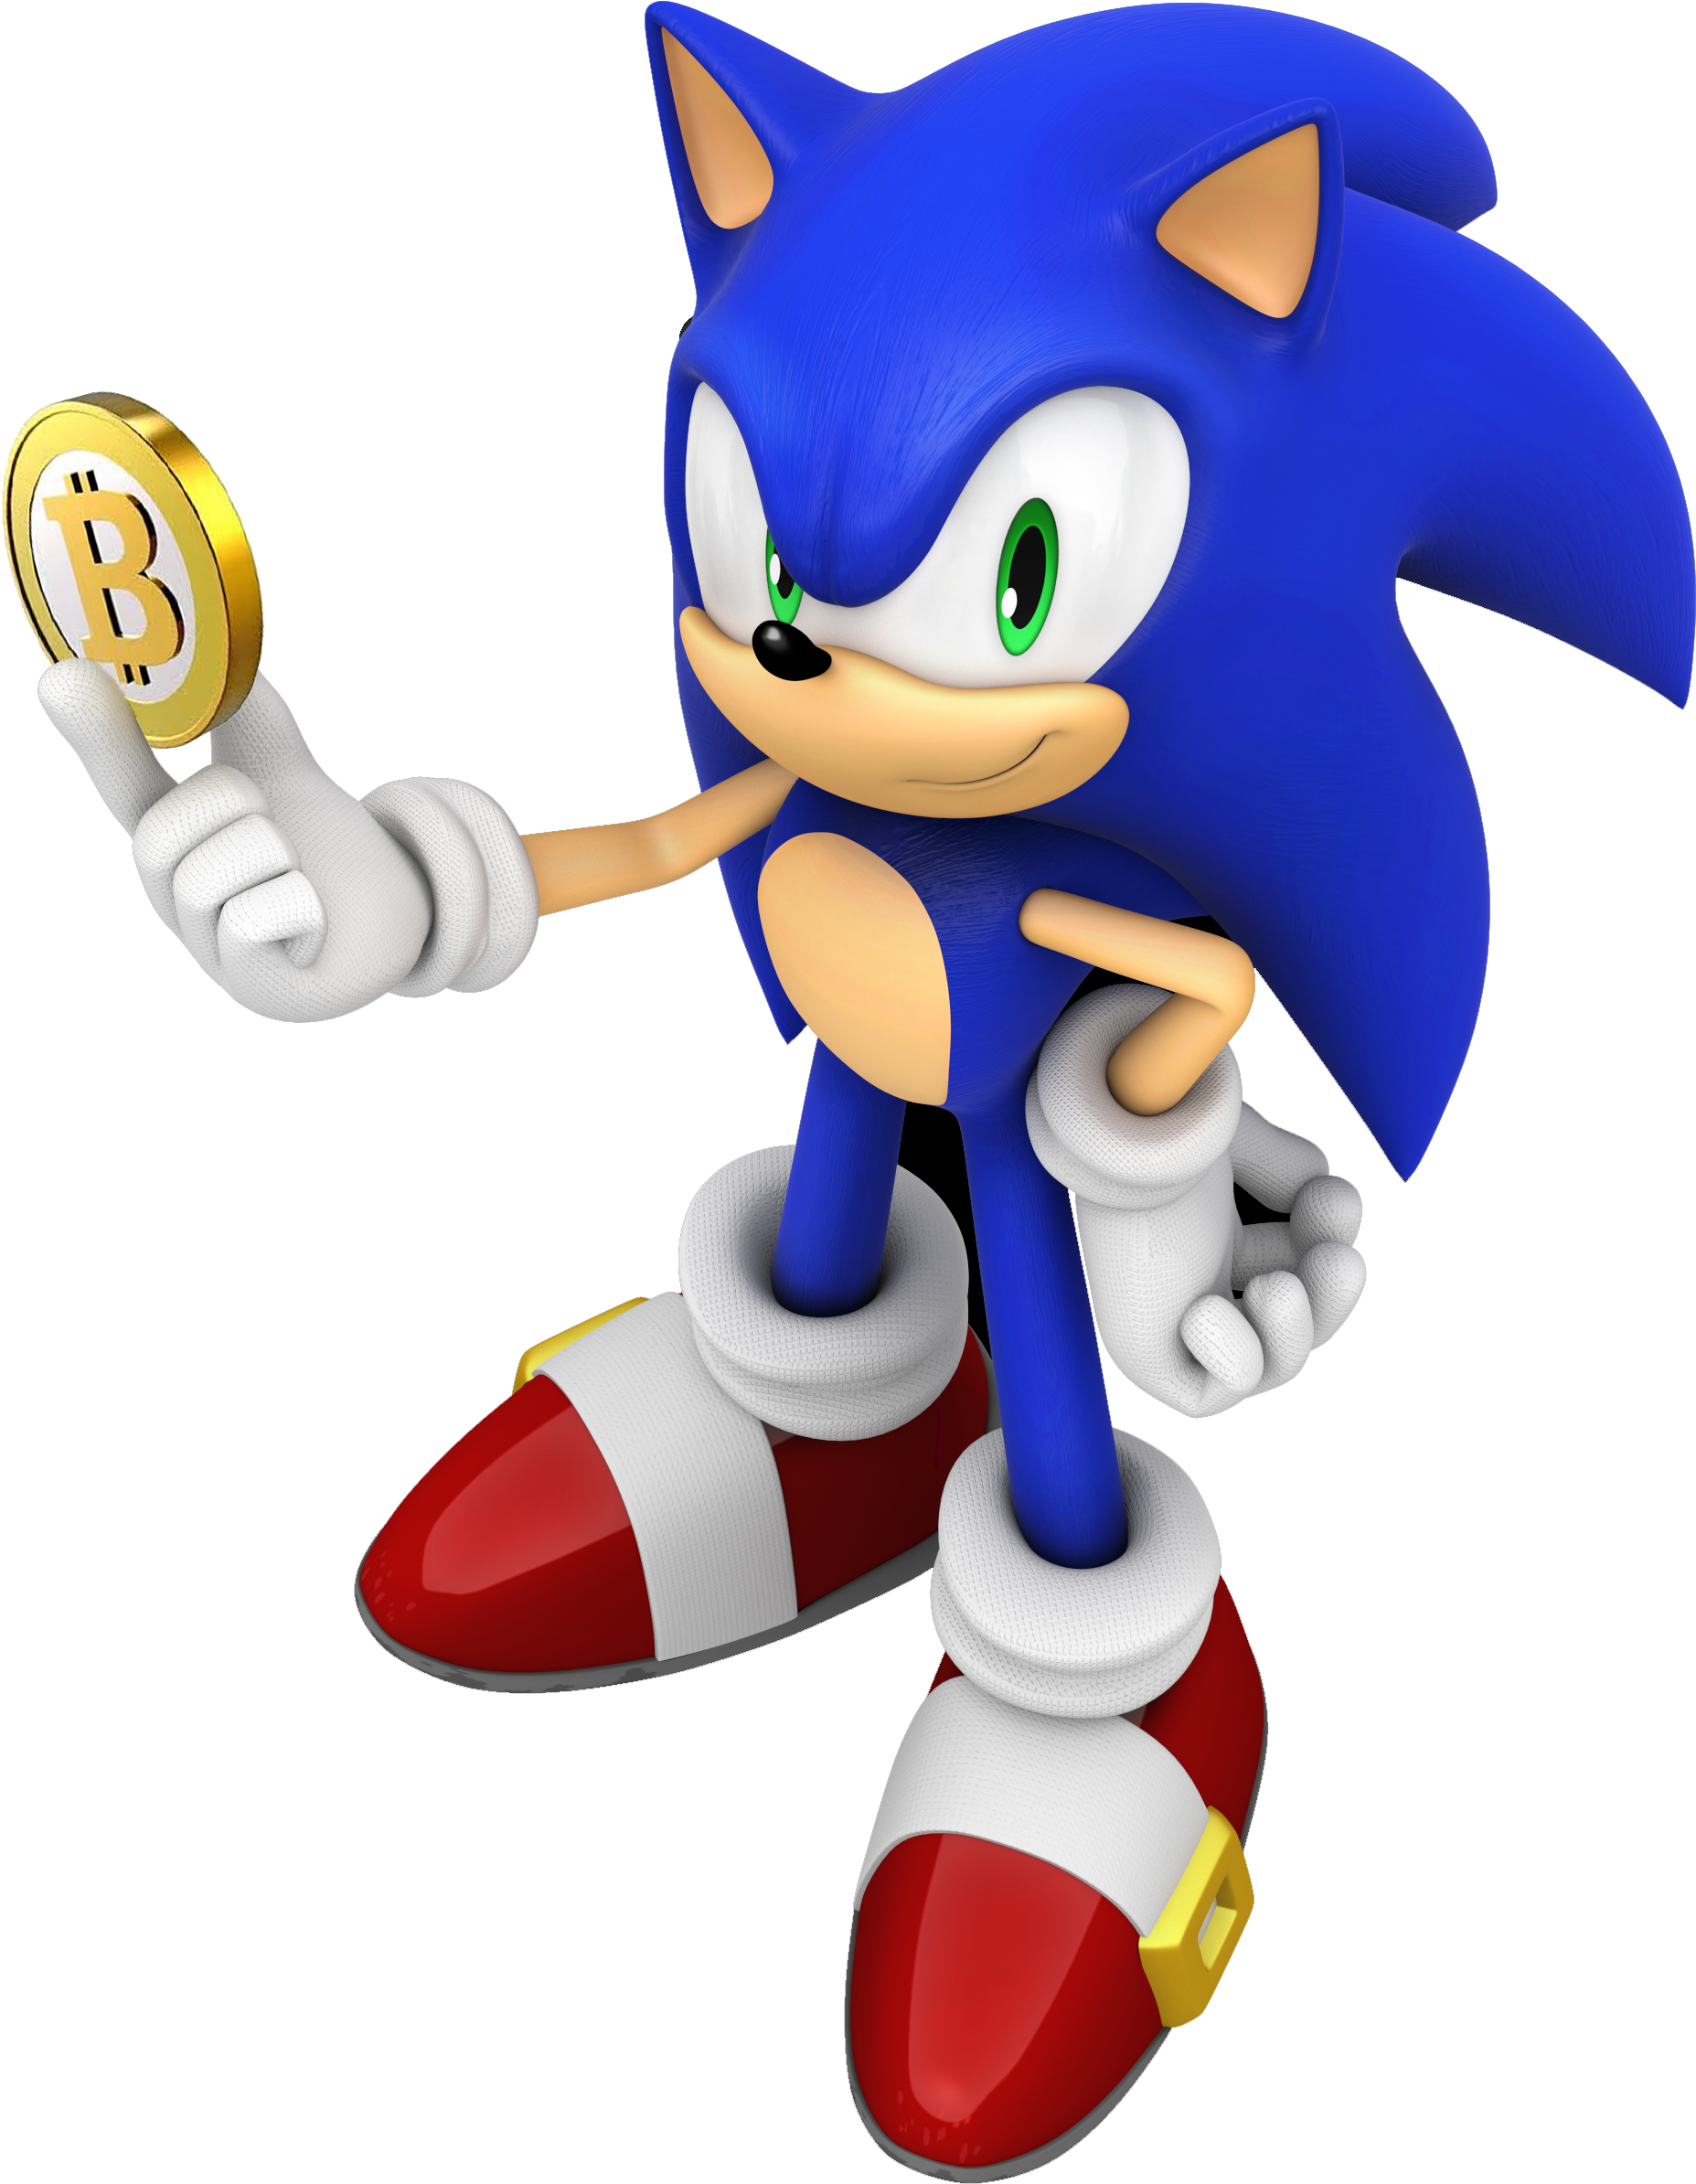 Download Sanic Sonic The Hedgehog Render Full Size Png Image Pngkit